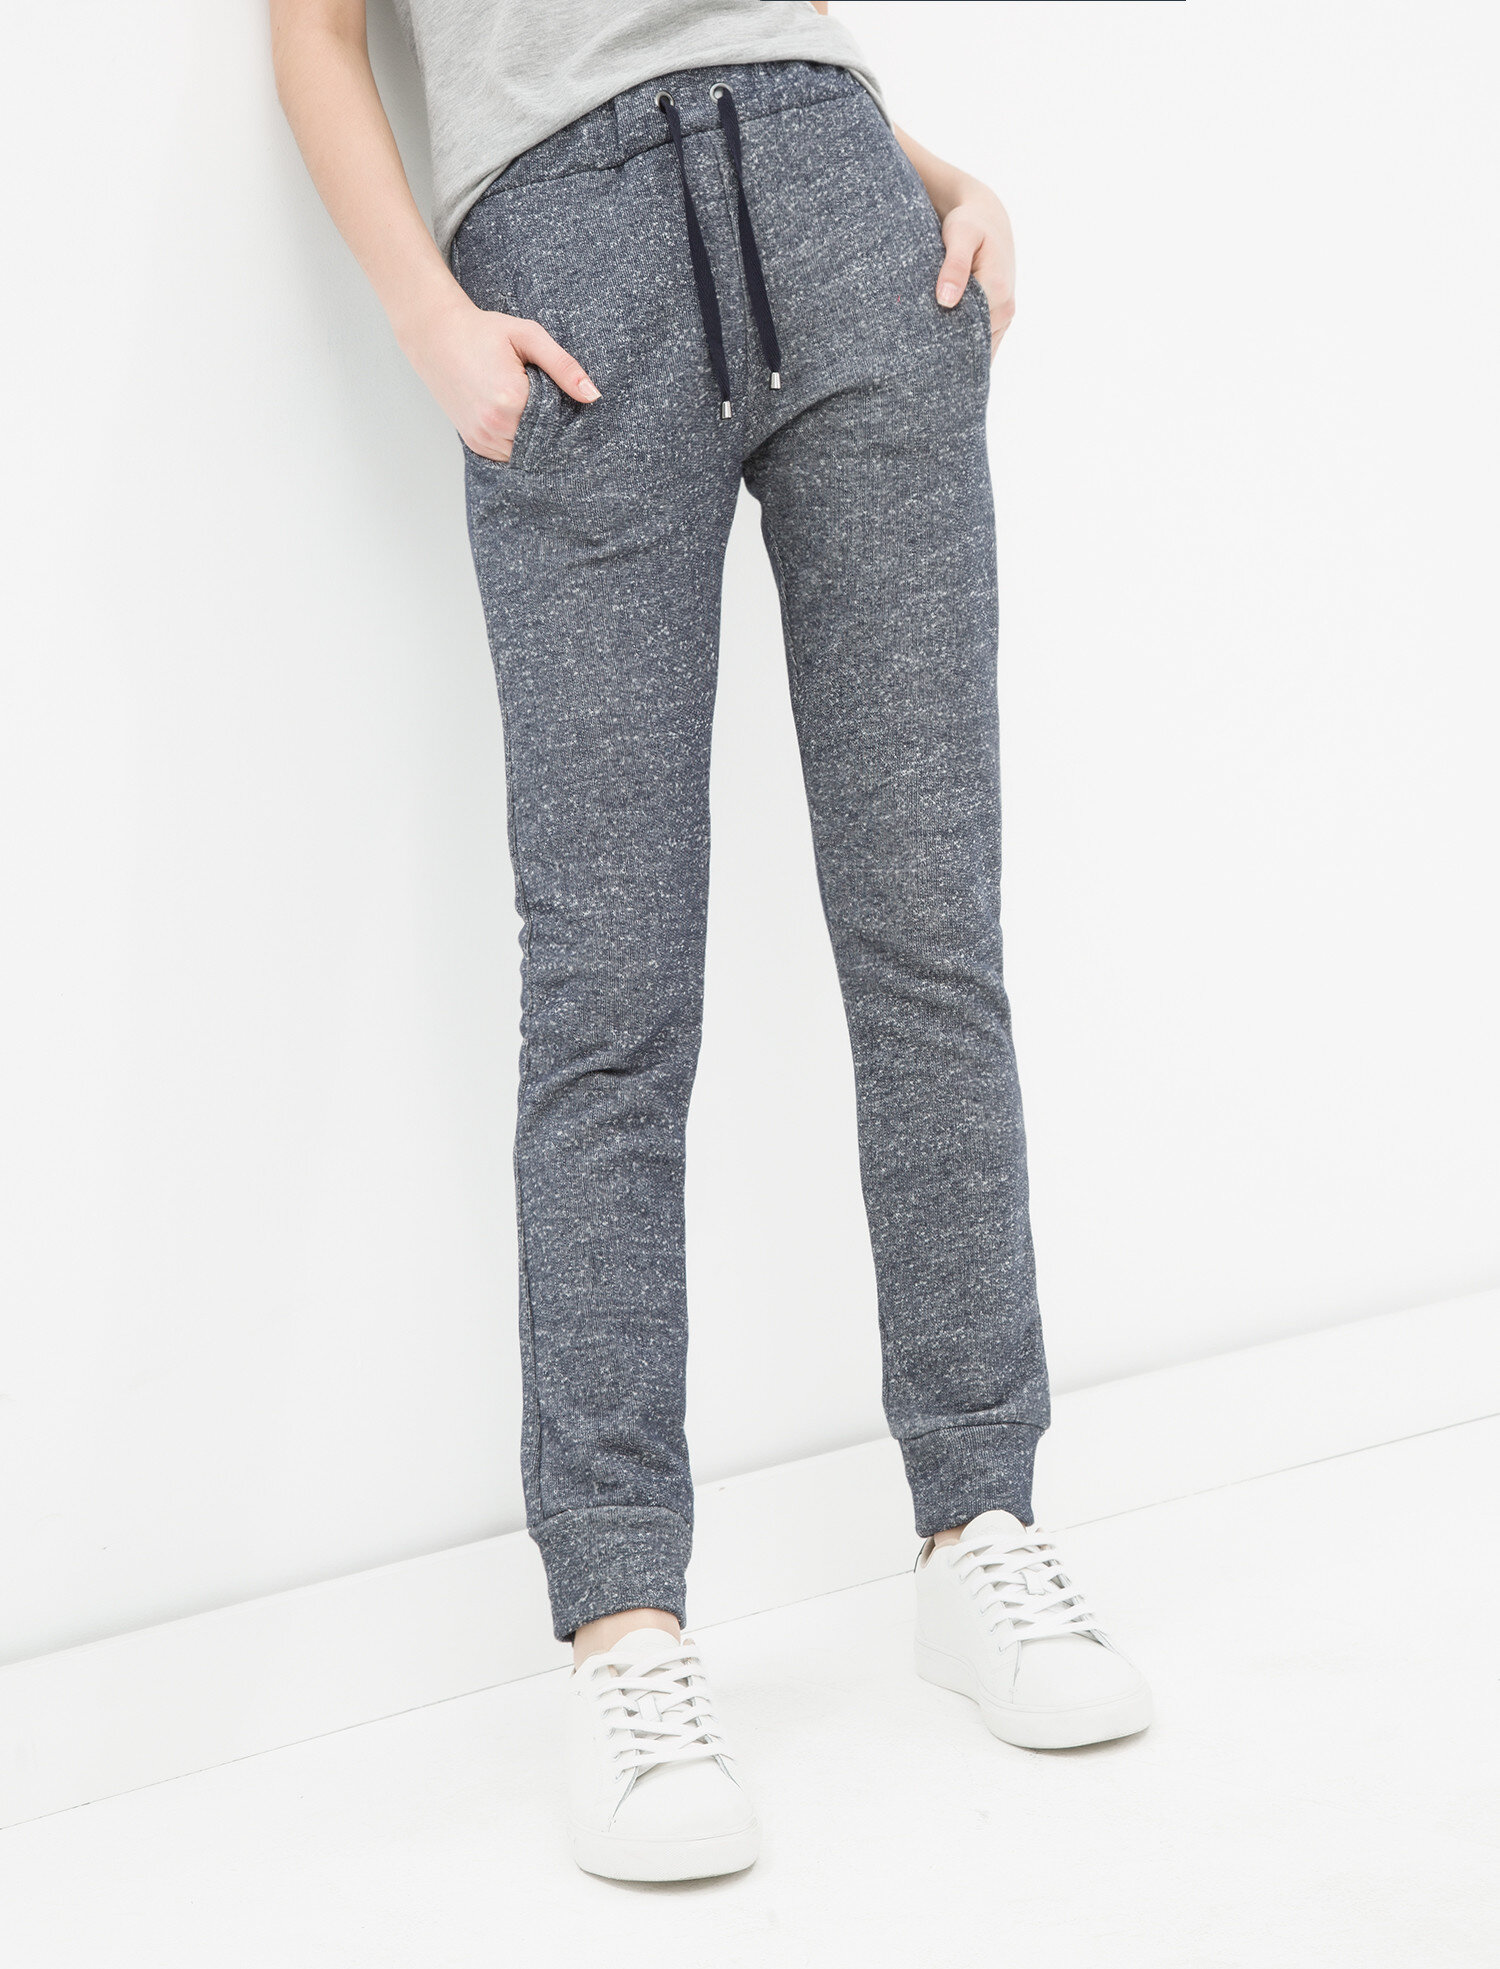 Lastest Ideas About Denim Joggers Outfit On Pinterest  Denim Joggers Joggers